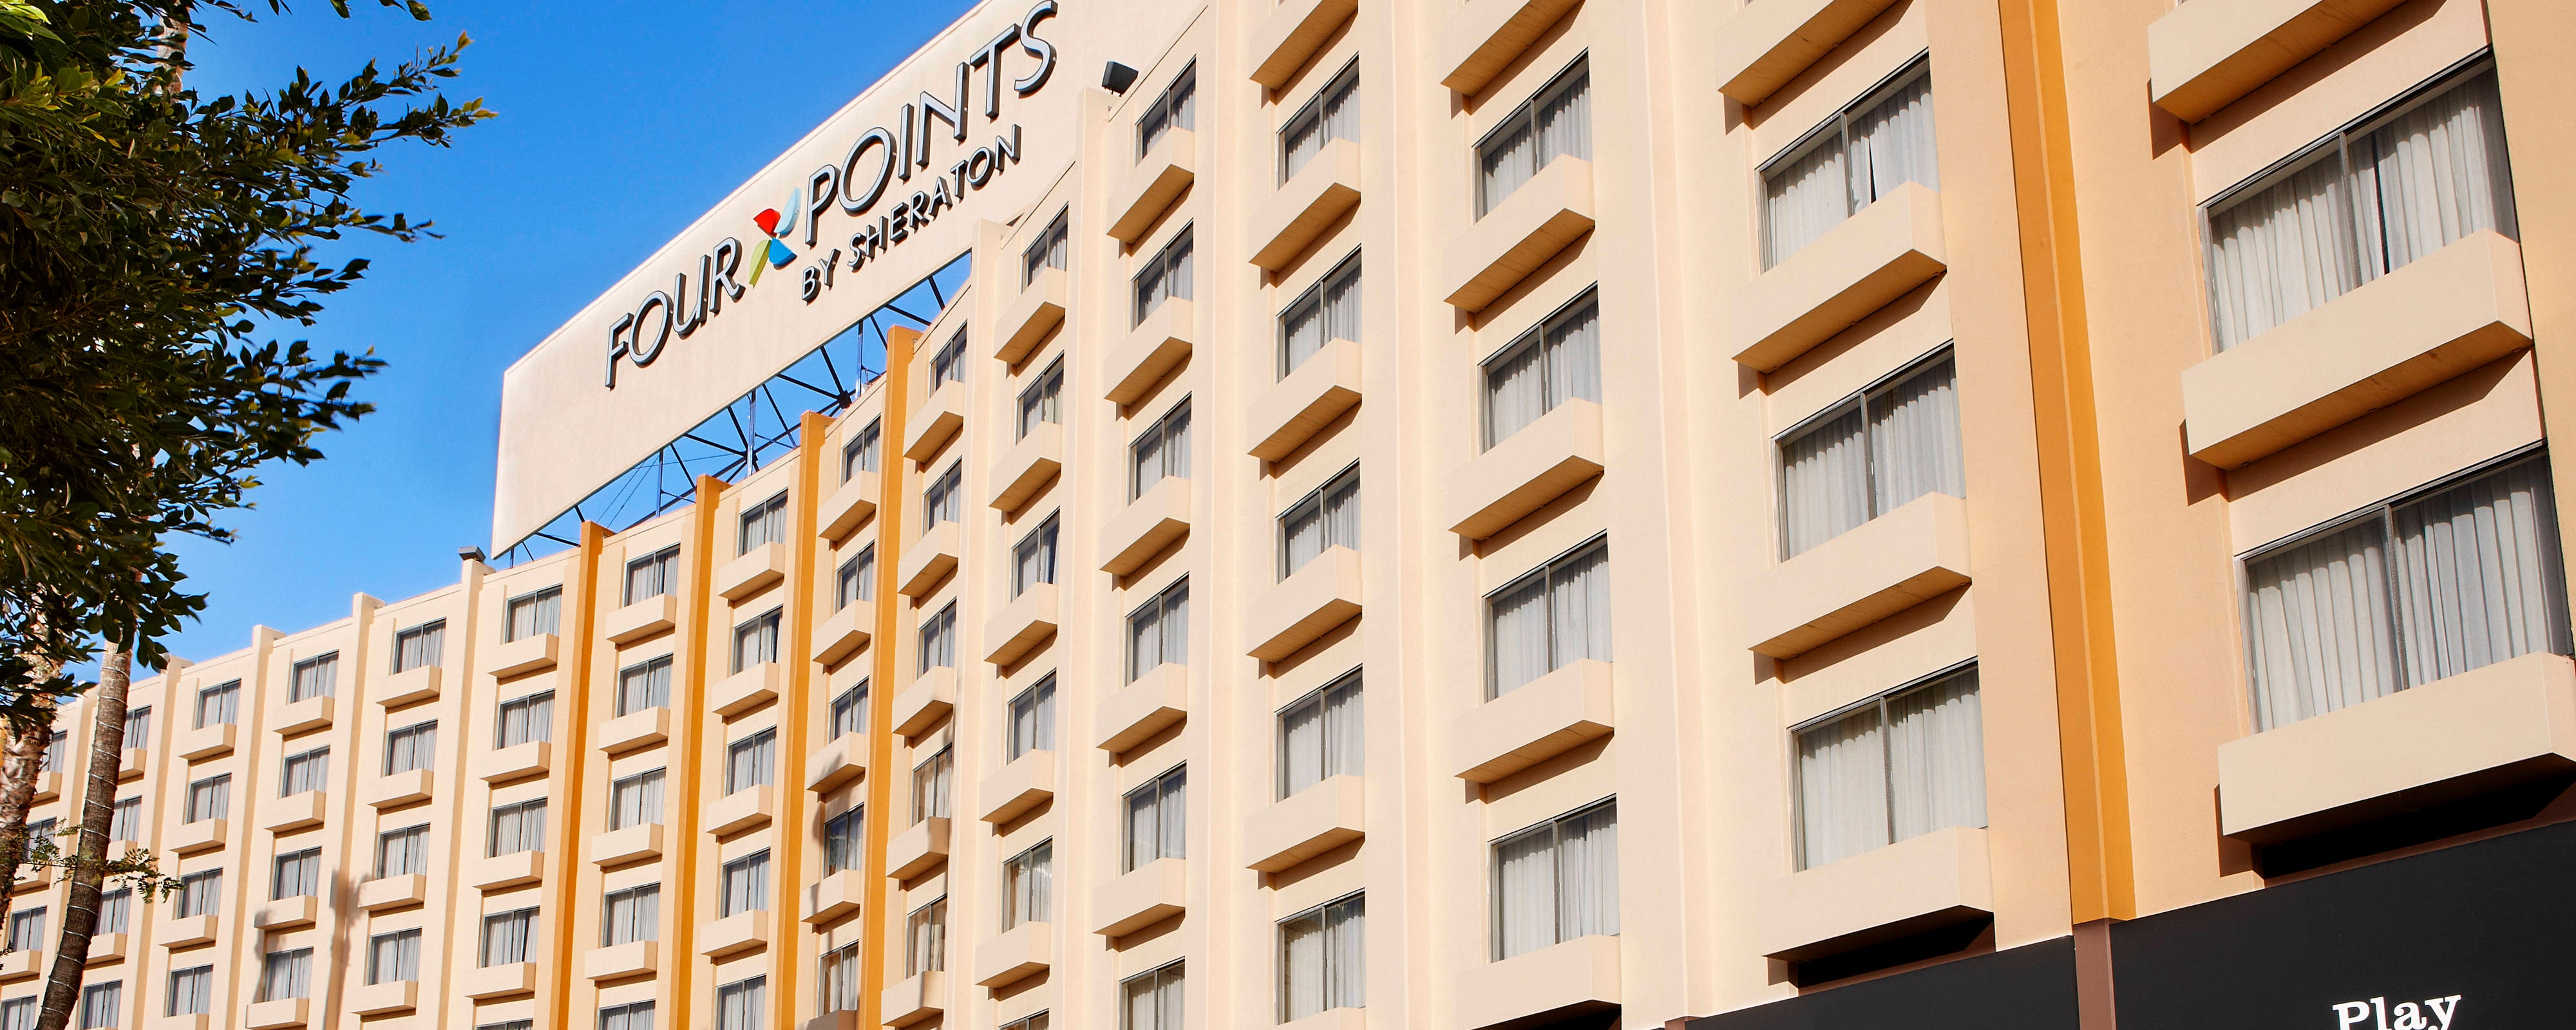 Four Points By Sheraton Los Angeles International Airport Spg